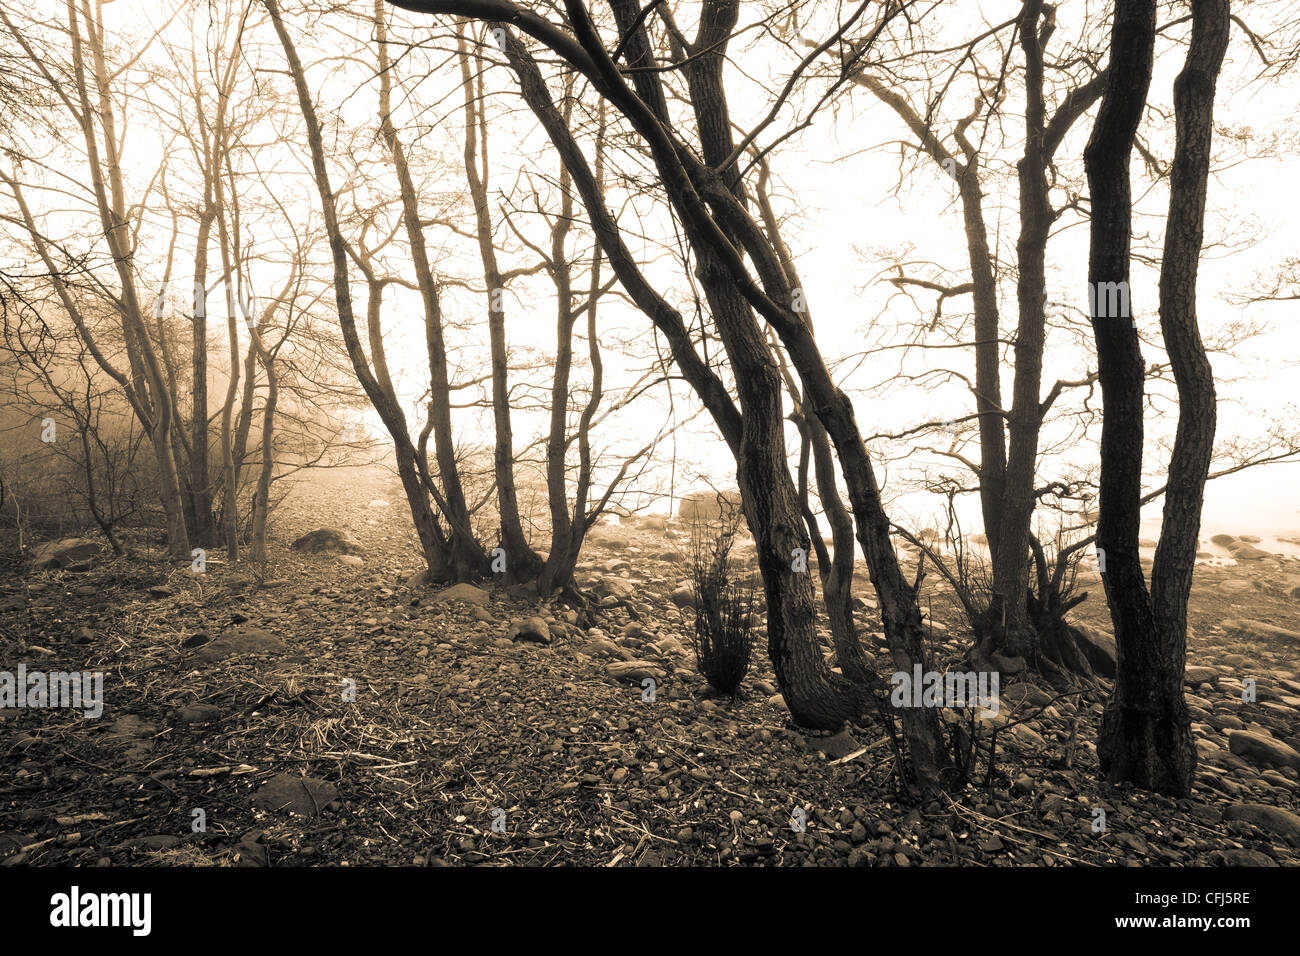 Trees in fog at the island Jeløy in Moss kommune, Østfold fylke, Norway. - Stock Image